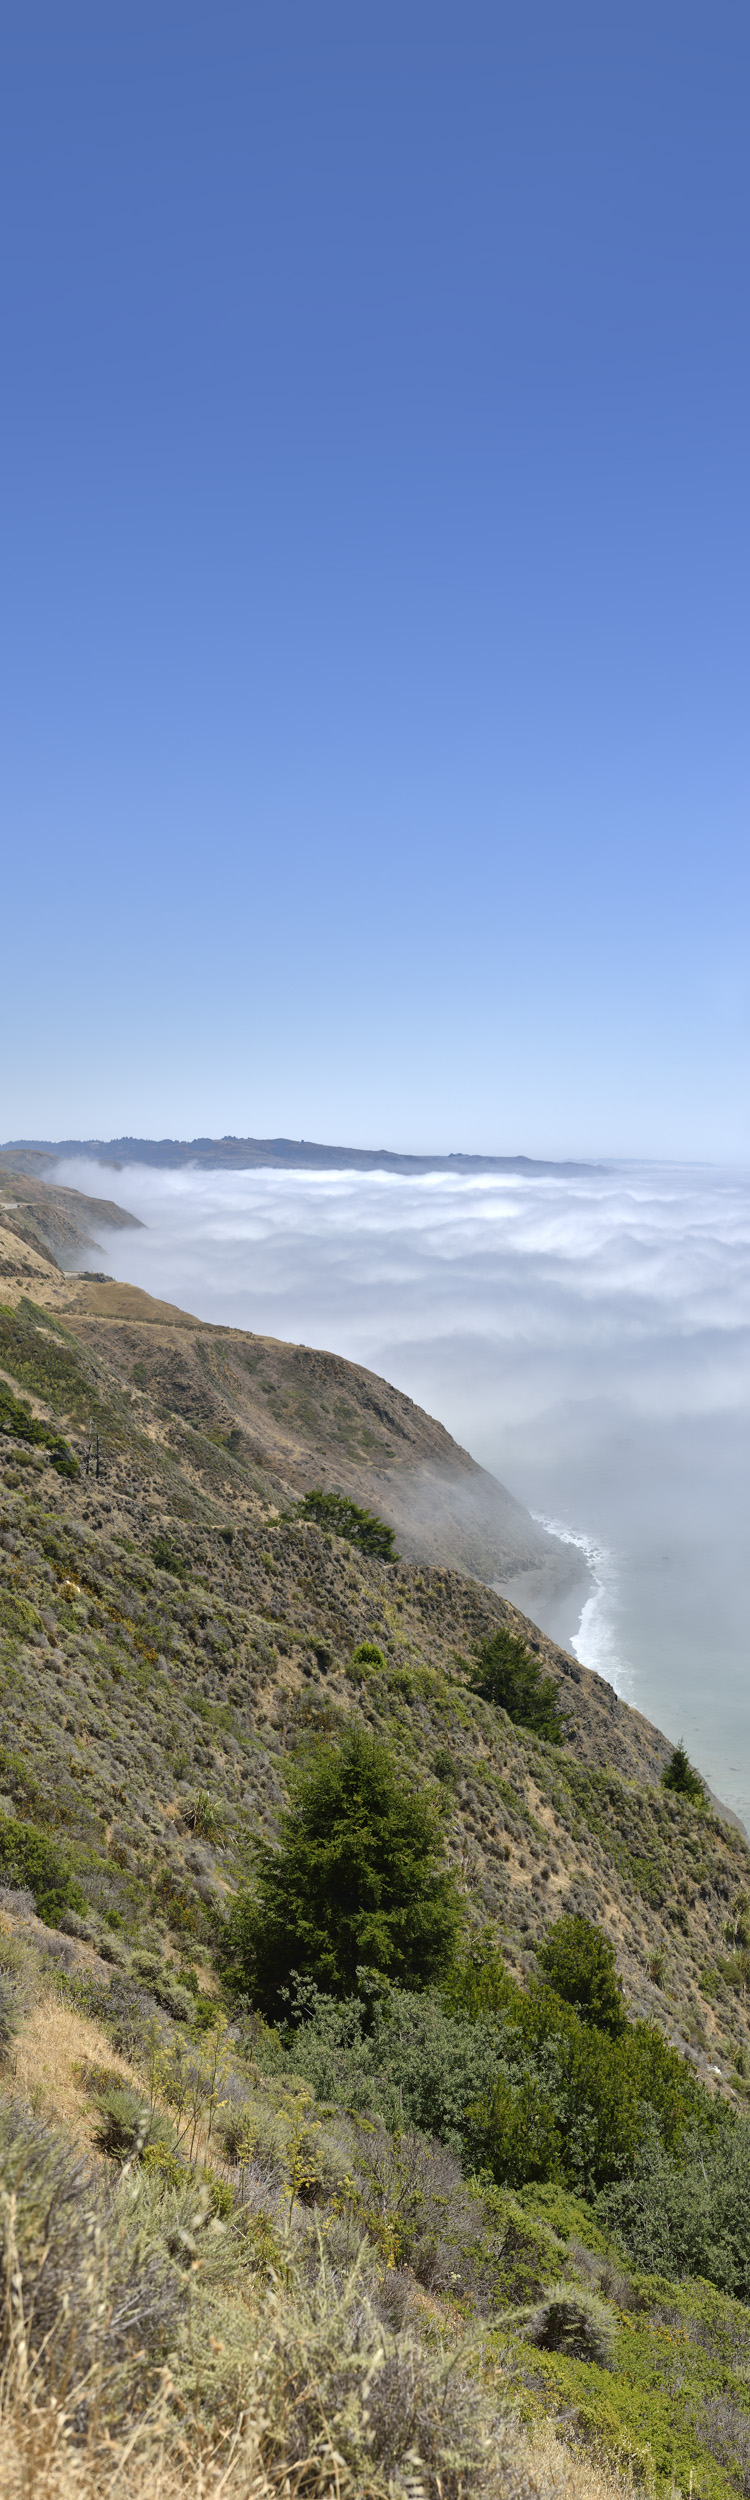 Fog on Coast, California